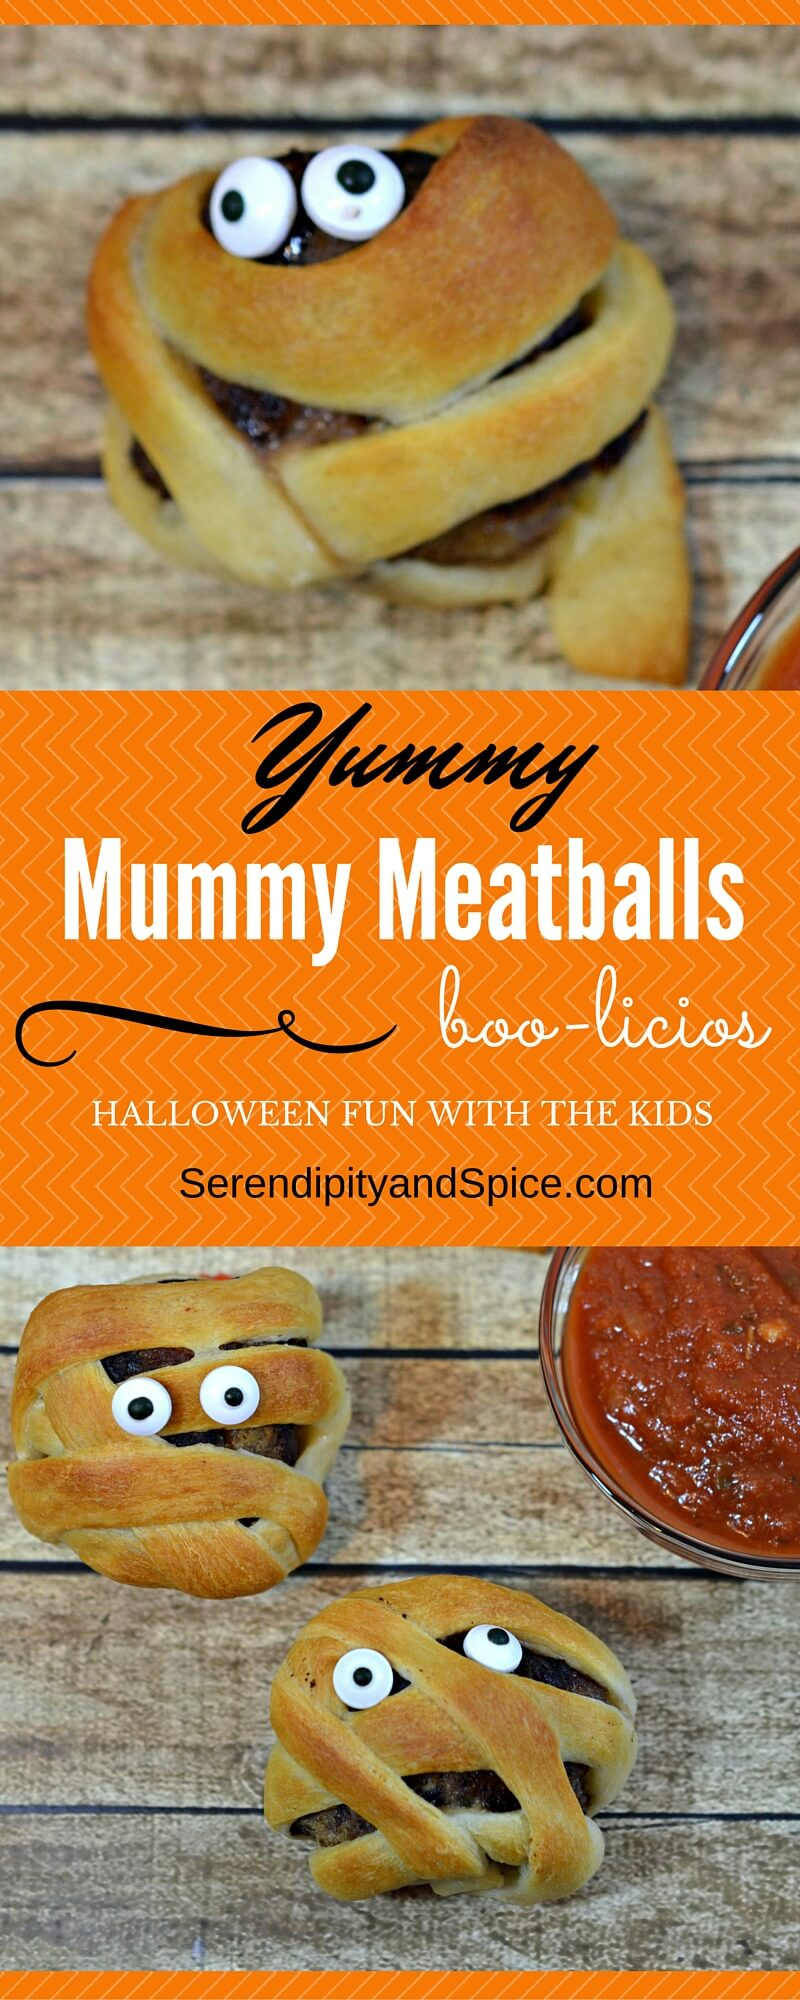 Yummy Mummy Meatballs A Halloween Treat for Kids